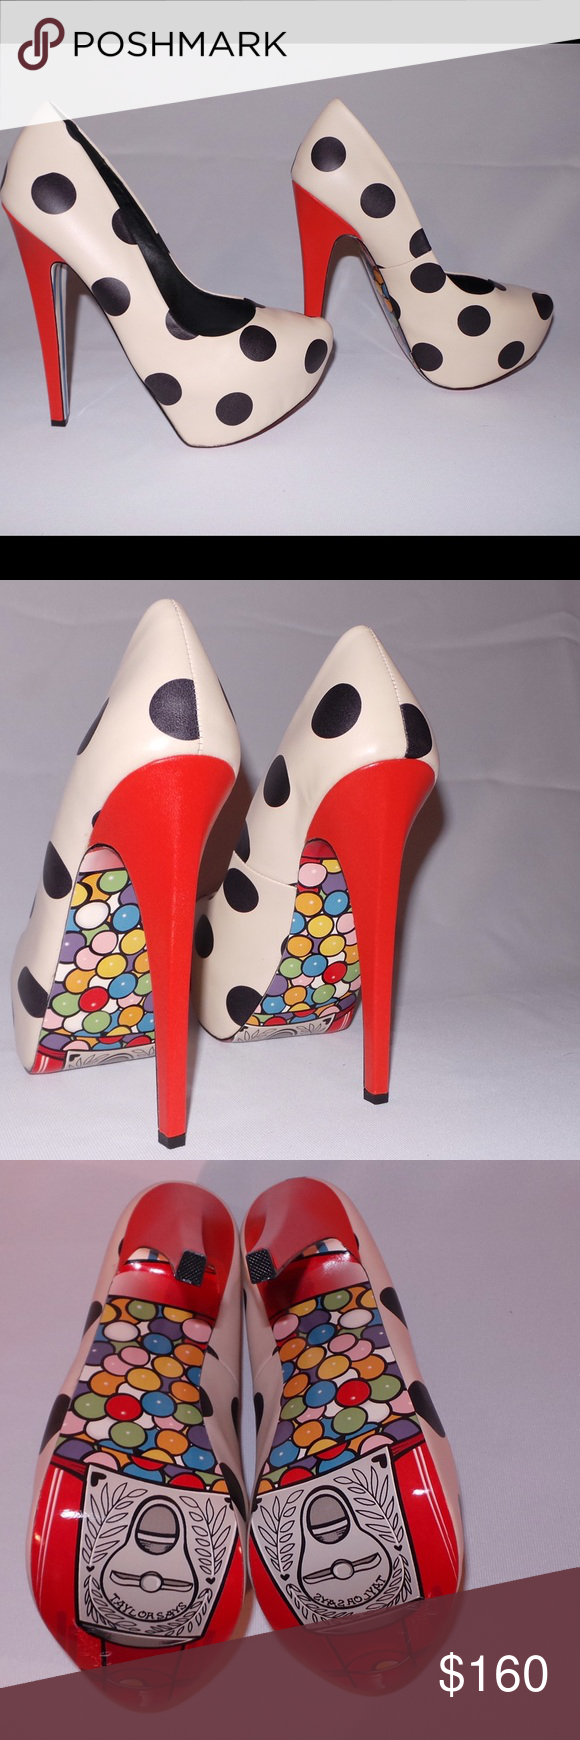 TaylorSays Dotties-Cream, Black & Red-Orange (NIB) Leather- polka dots with artwork print on the sole of a cute gum ball machine.   5.5 inch heel with 1.5 inch platform.  Brand new in box.  Also comes with branded satin shoe bag. TaylorSays Shoes Heels